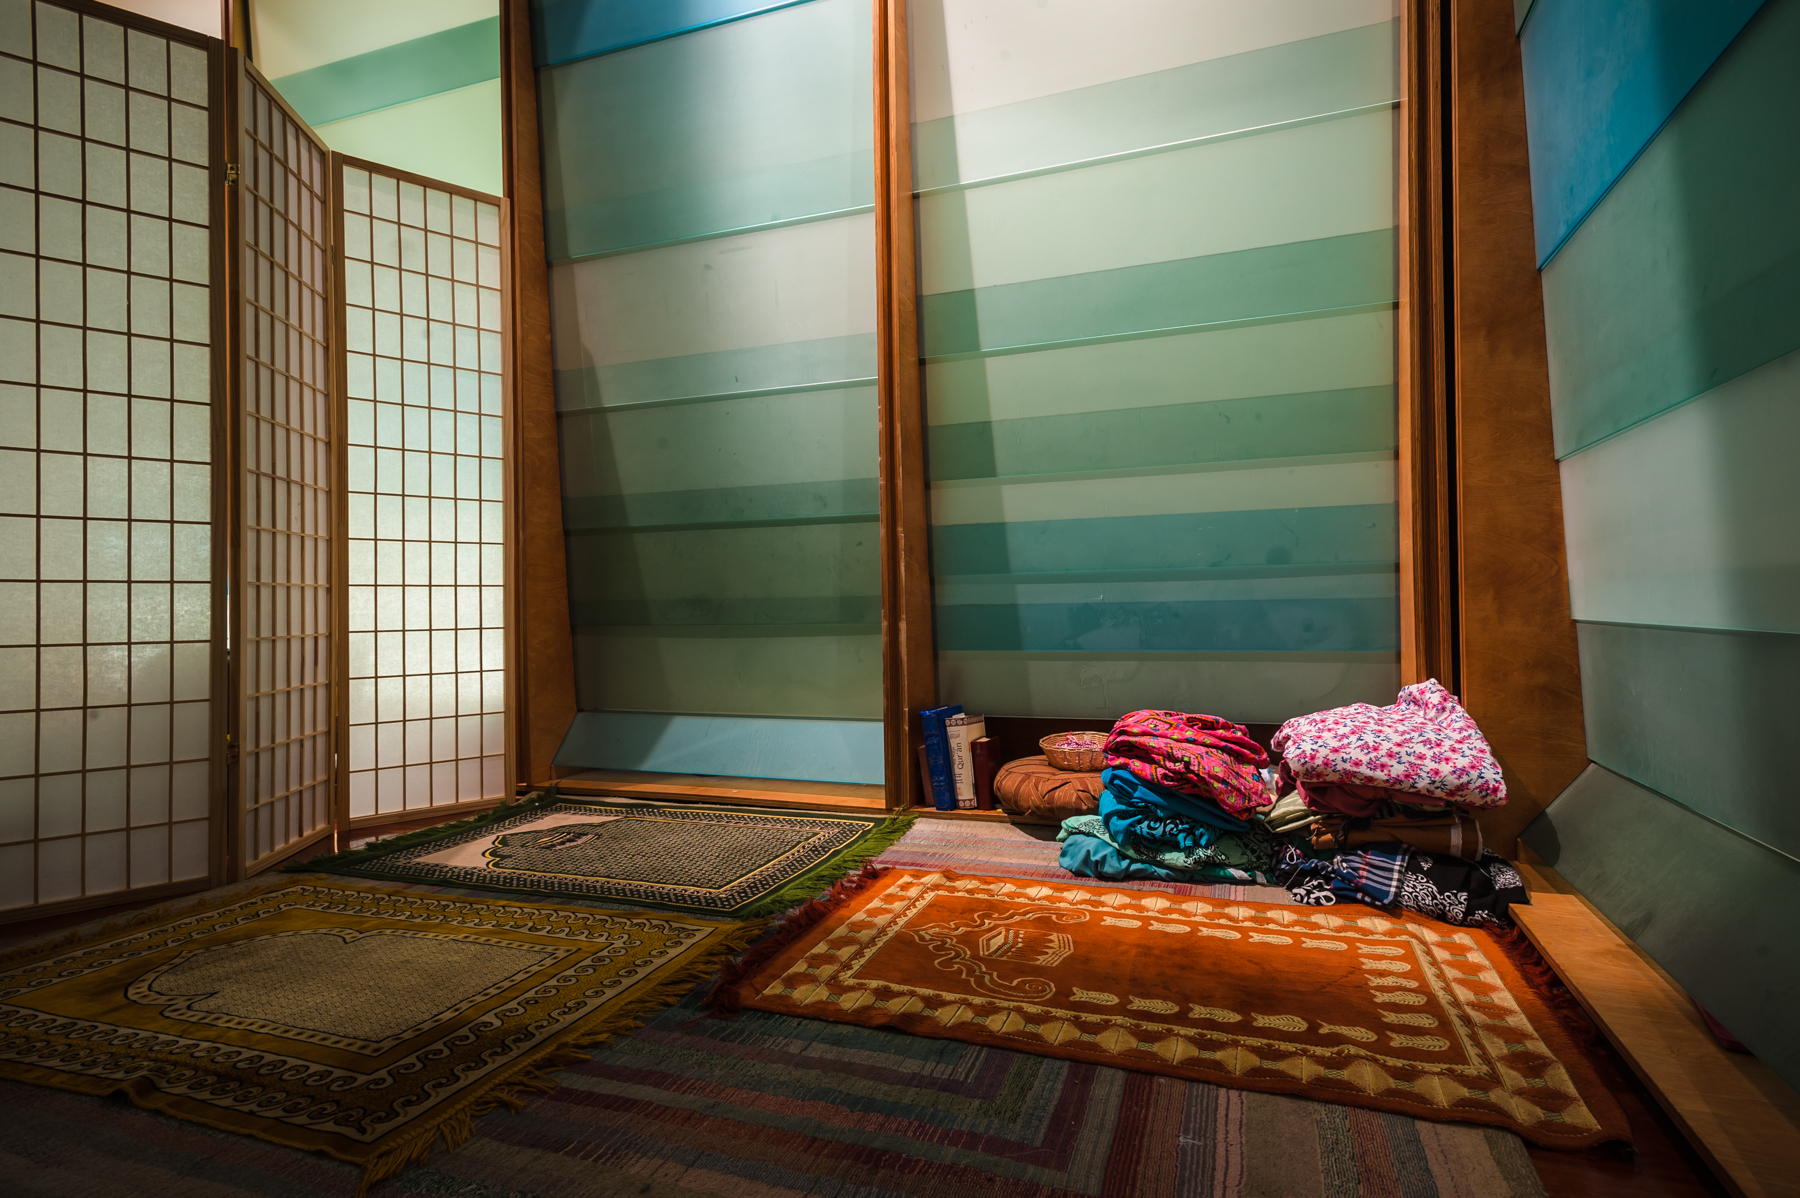 The area where Muslim women pray in one corner of the Sacred Space